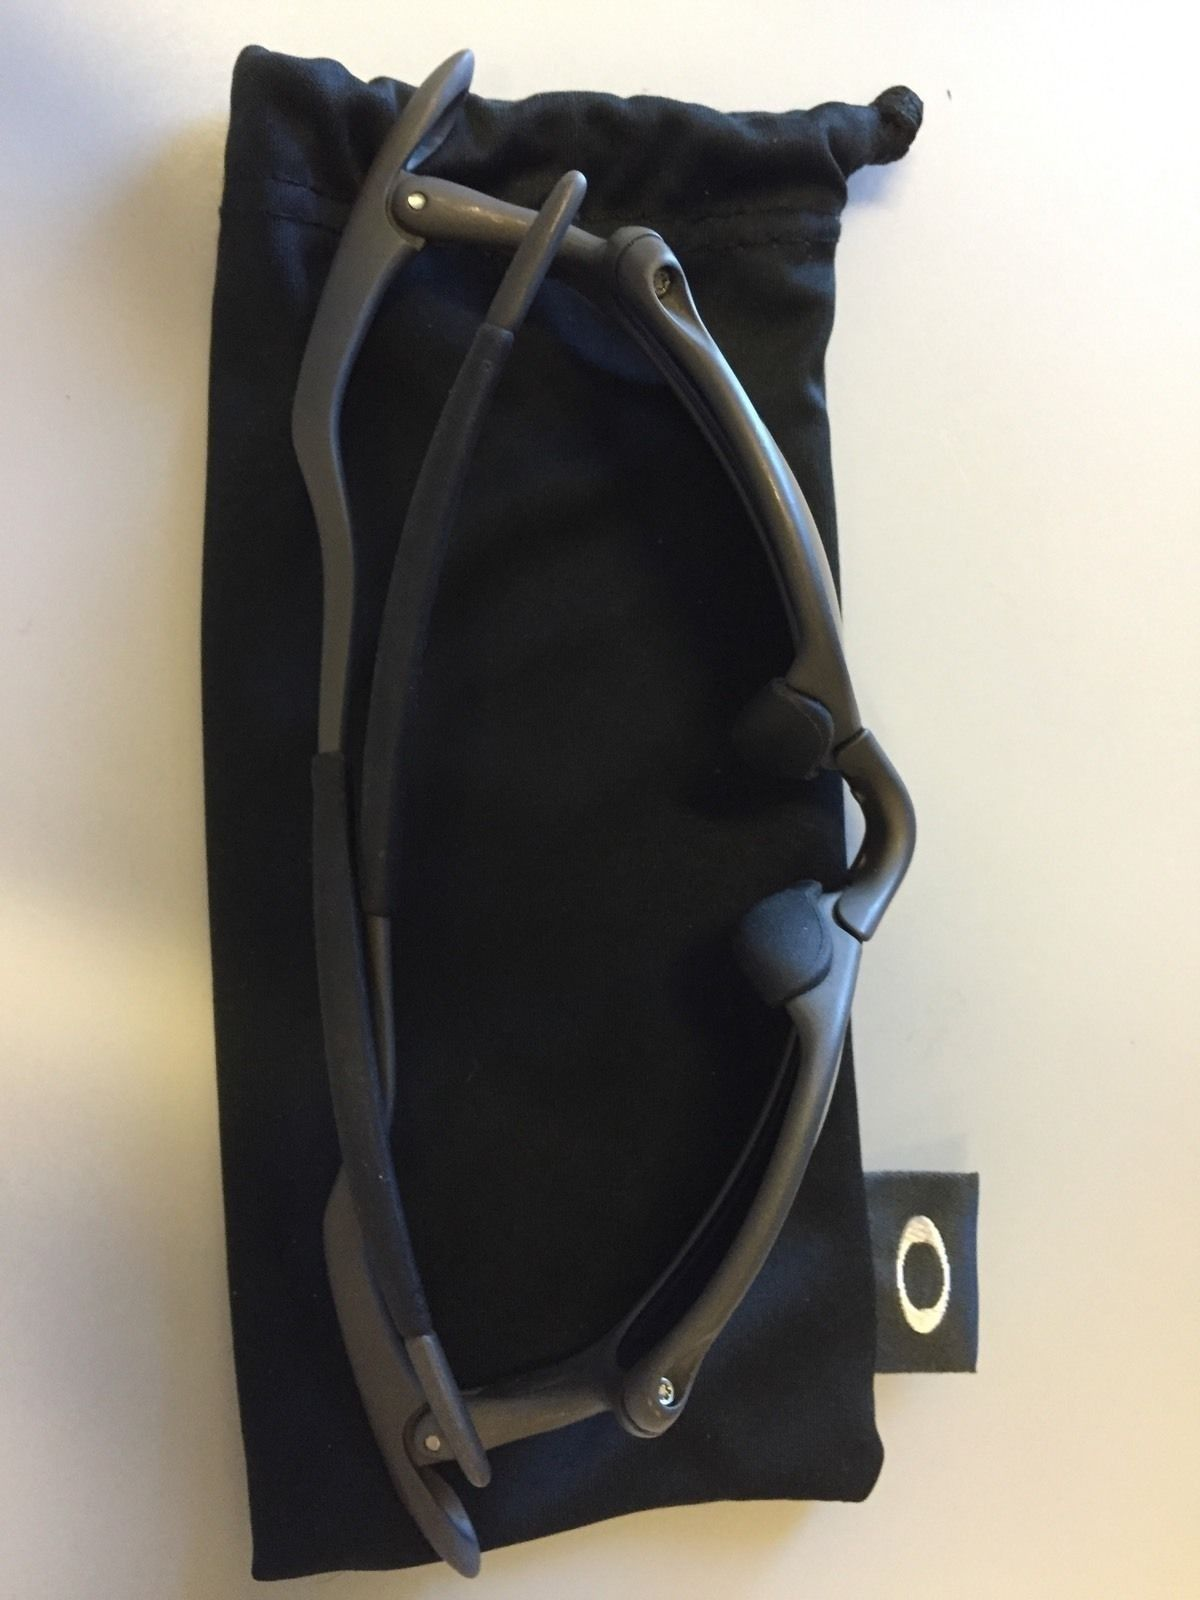 Oakley X Metal XX Black Iridium Almost Mint $500+/$400- - x9b.JPG